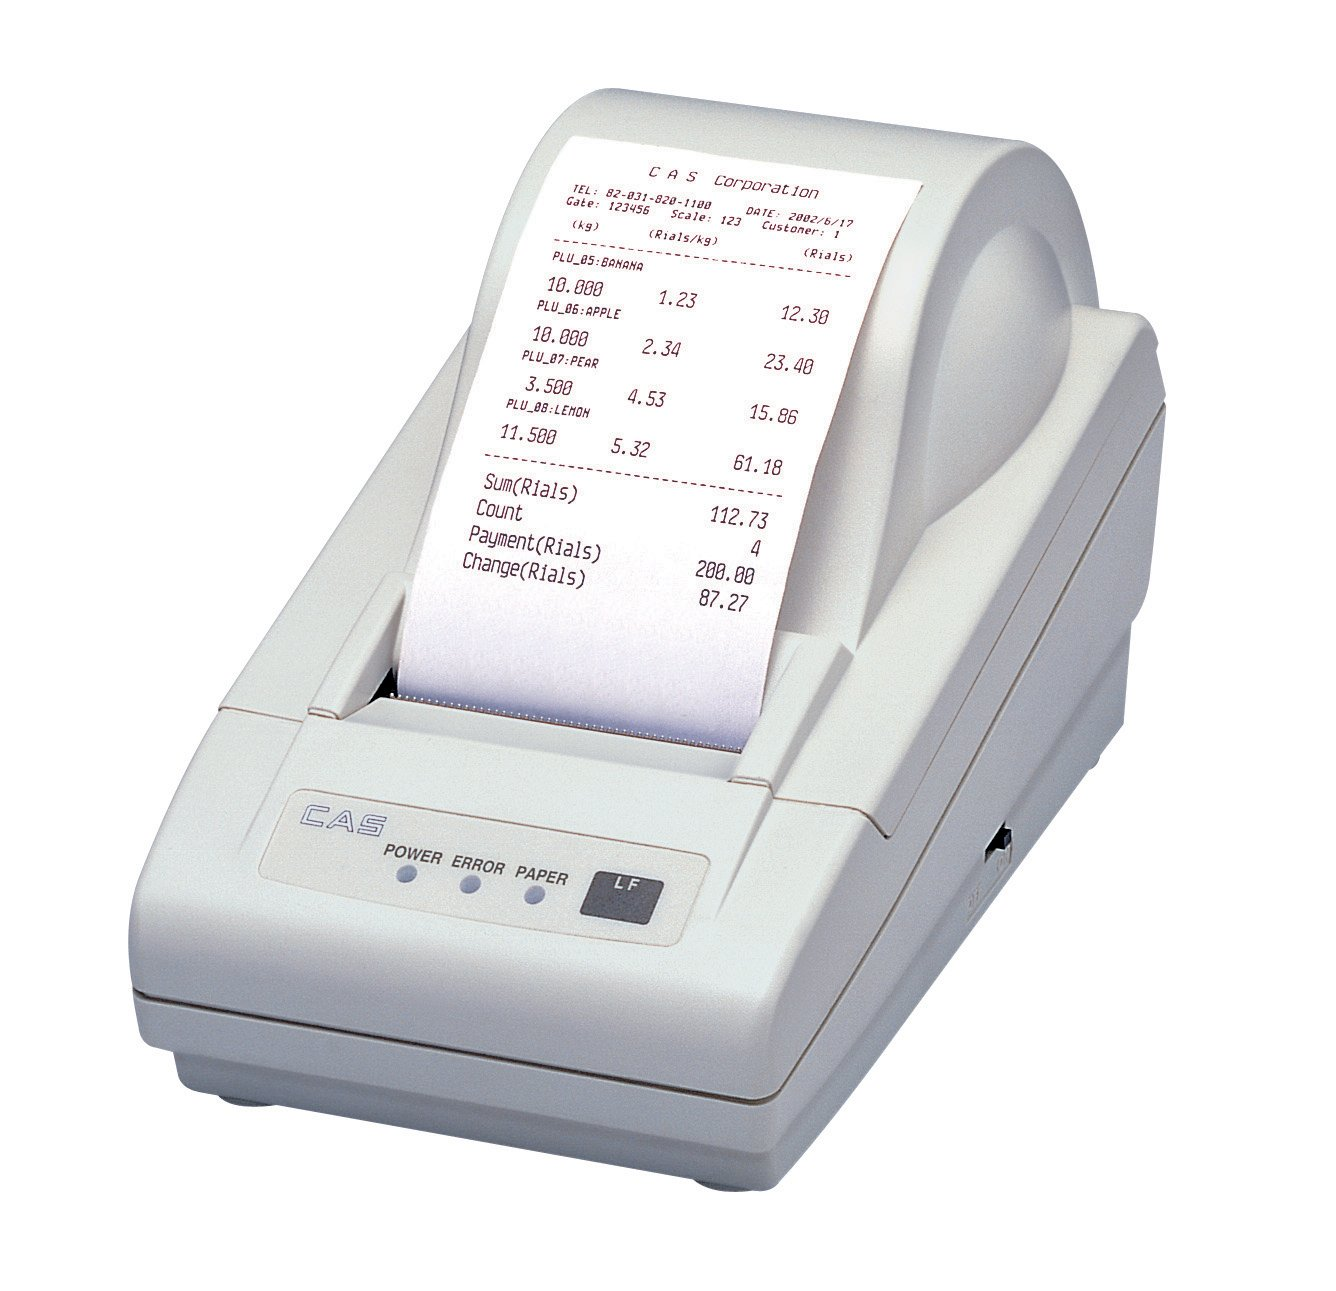 CAS DEP-50 Thermal Receipt Printer for S2000JR/EC/ED Series Scale by CAS